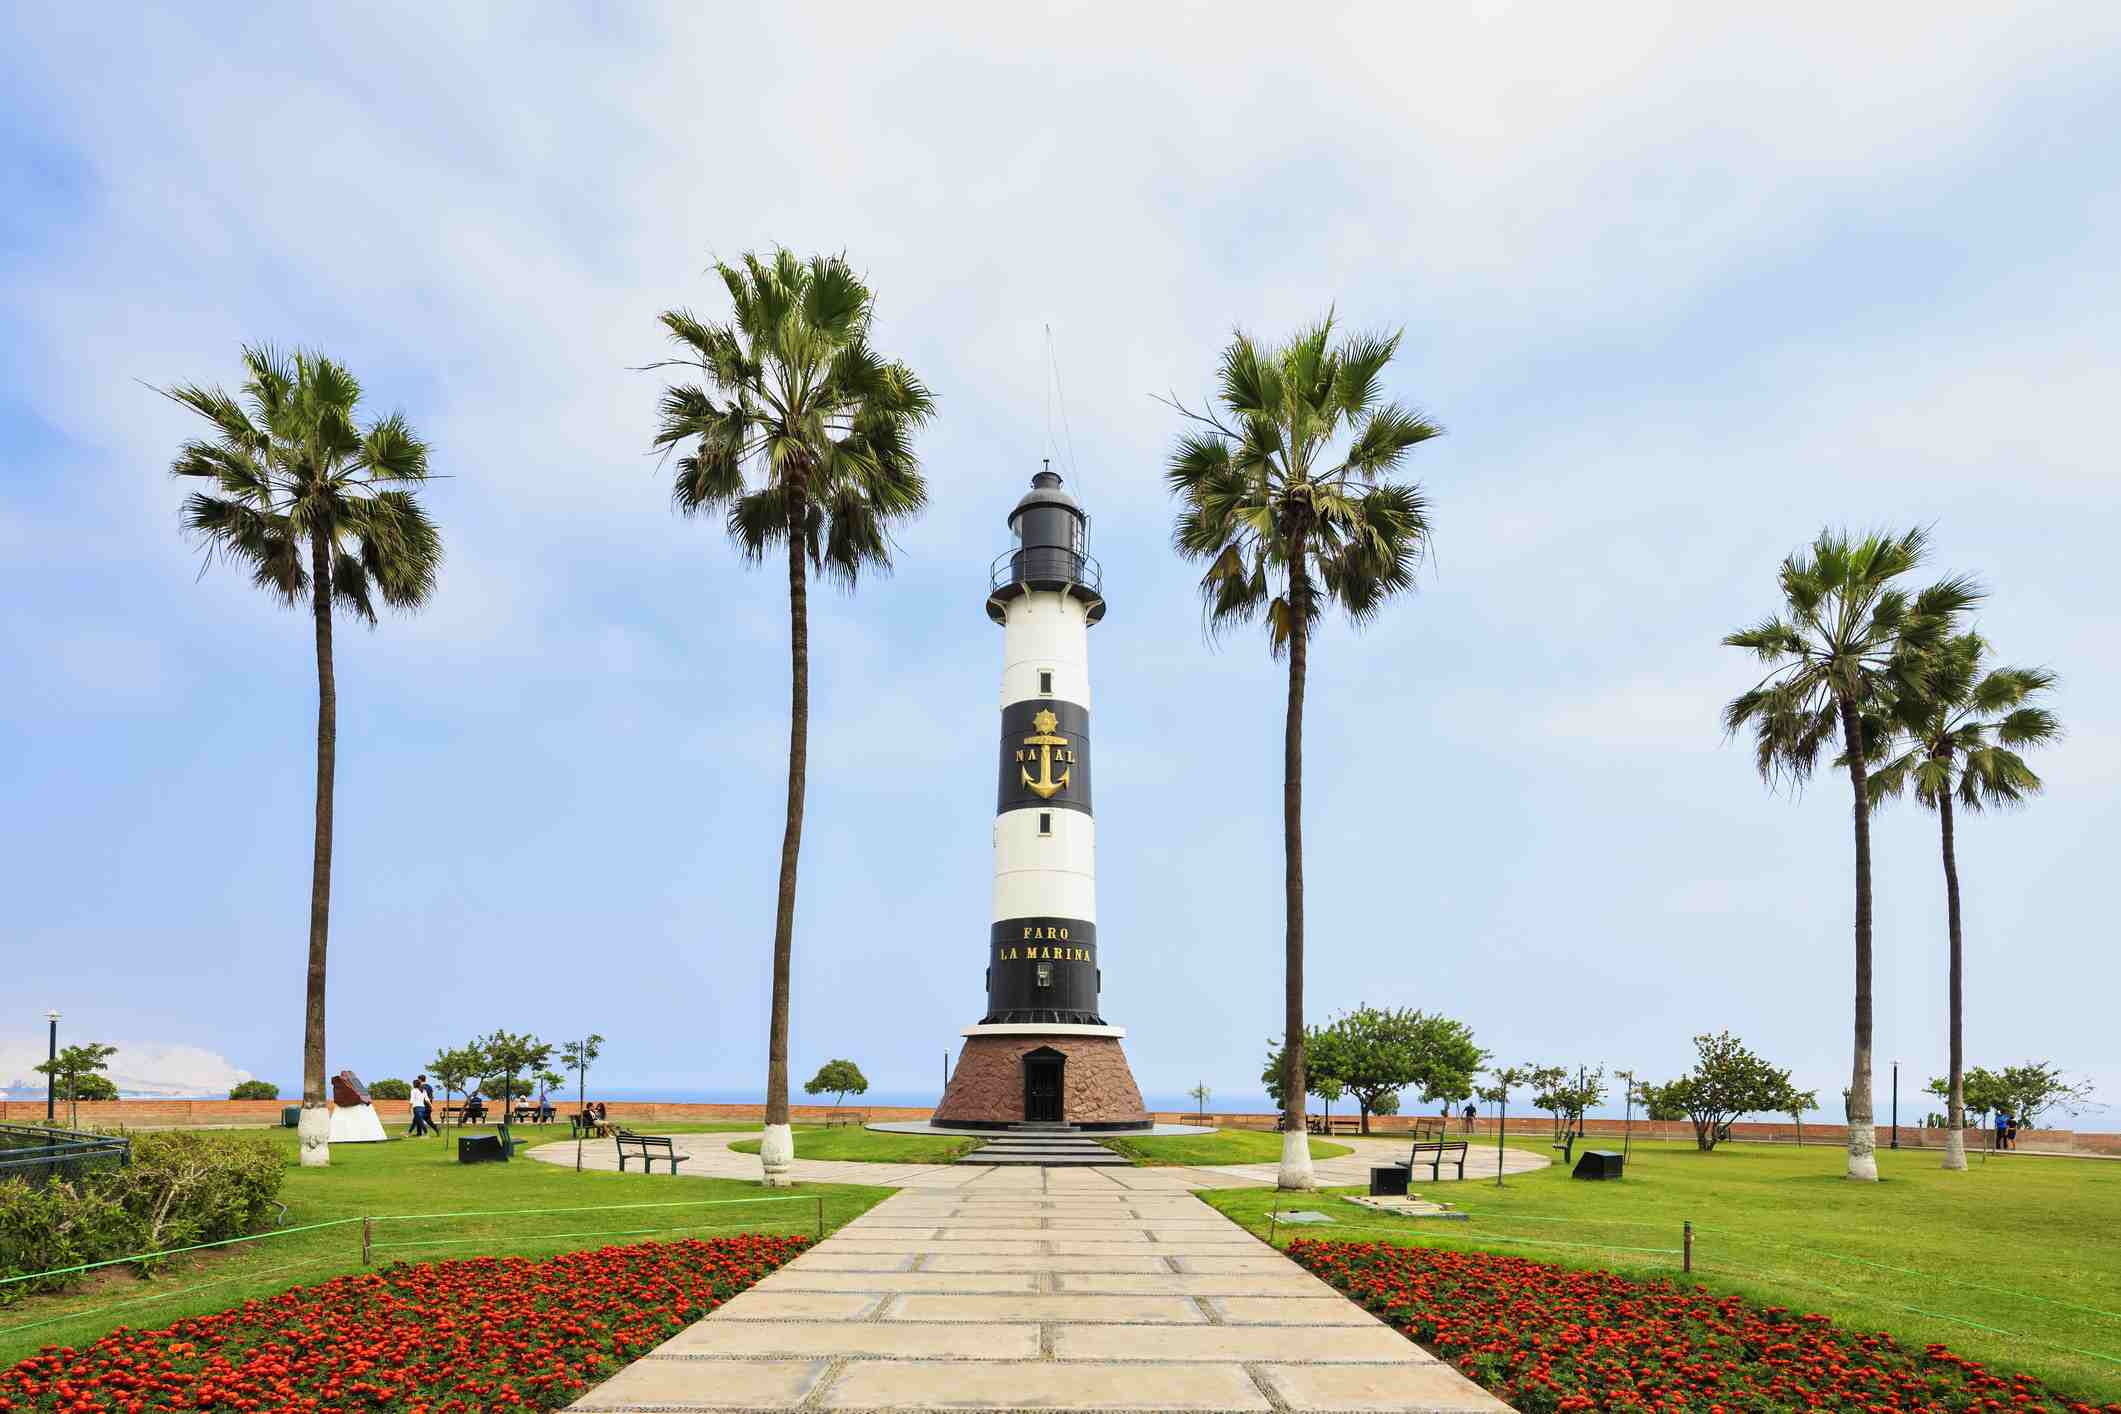 Miraflores Boardwalk Lighthouse is striped, gilded with anchors, and flanked by palm trees